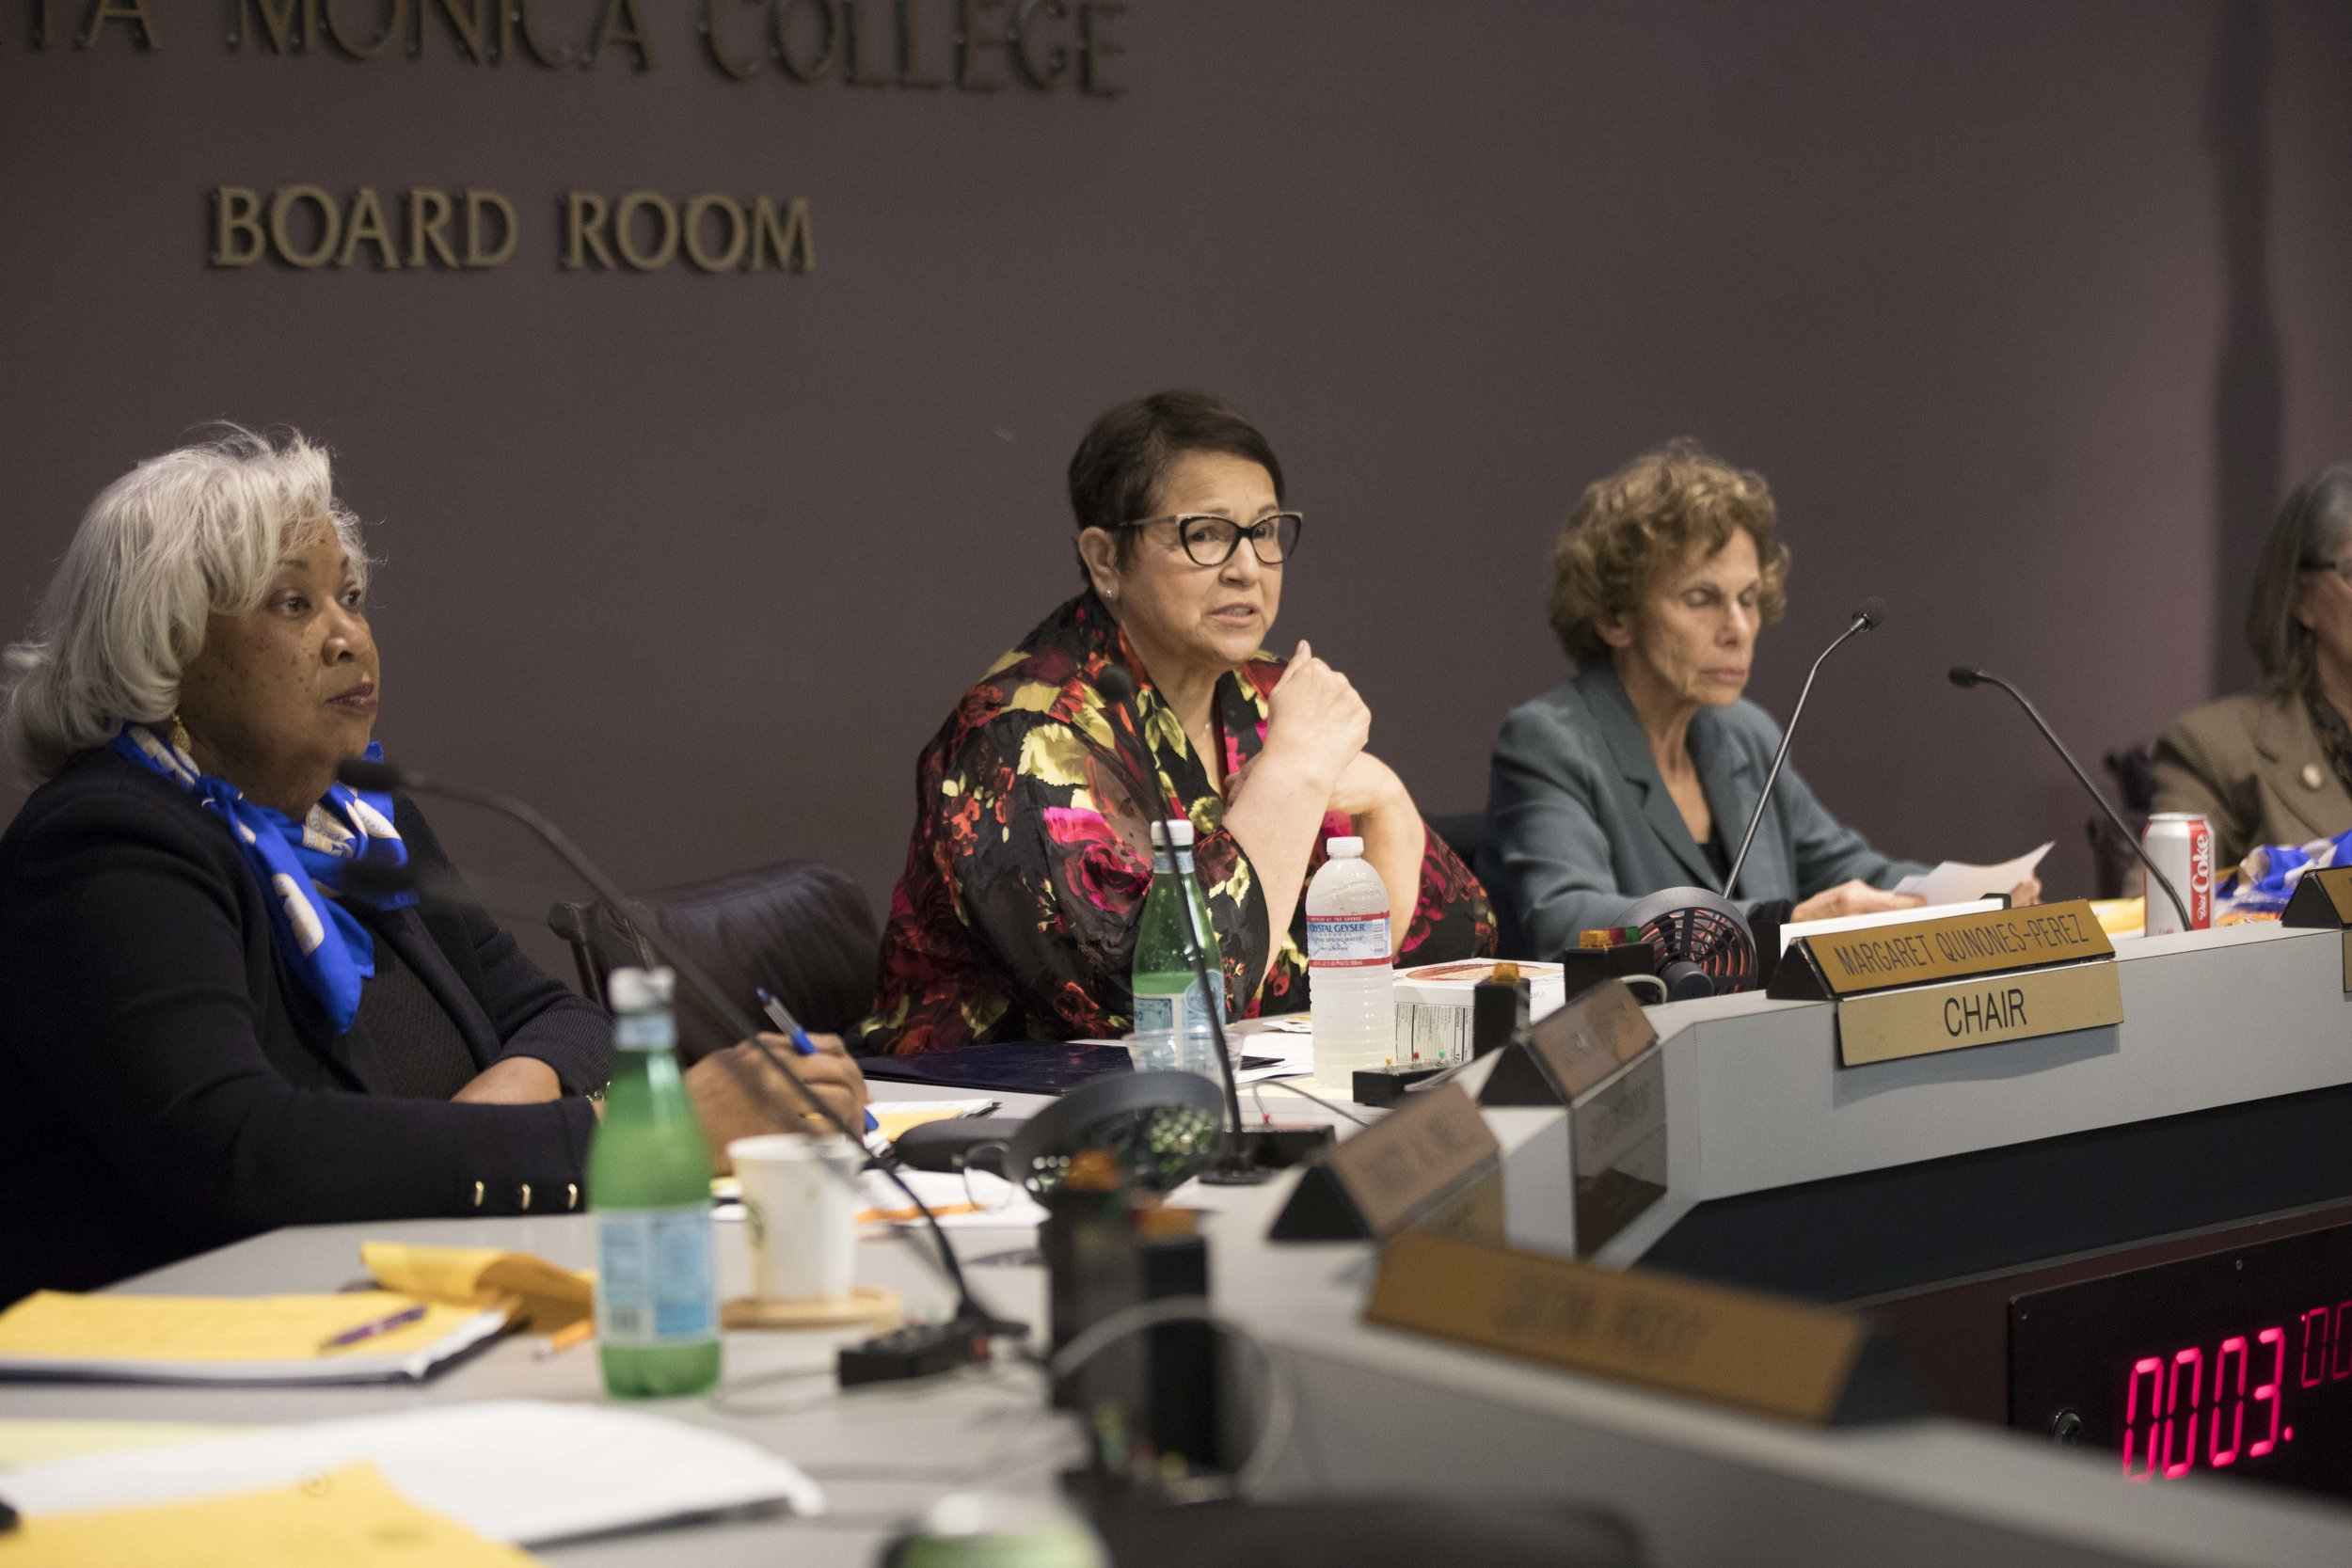 President and Superintendent of Santa Monica College, Kathryn E. Jeffery and Chair Margaret Quinones-Perez at the Board of Trustees Meeting at Santa Monica College in Santa Monica, California on Tuesday April 2, 2019. Photographer (Tanya Barcessat / The Corsair)